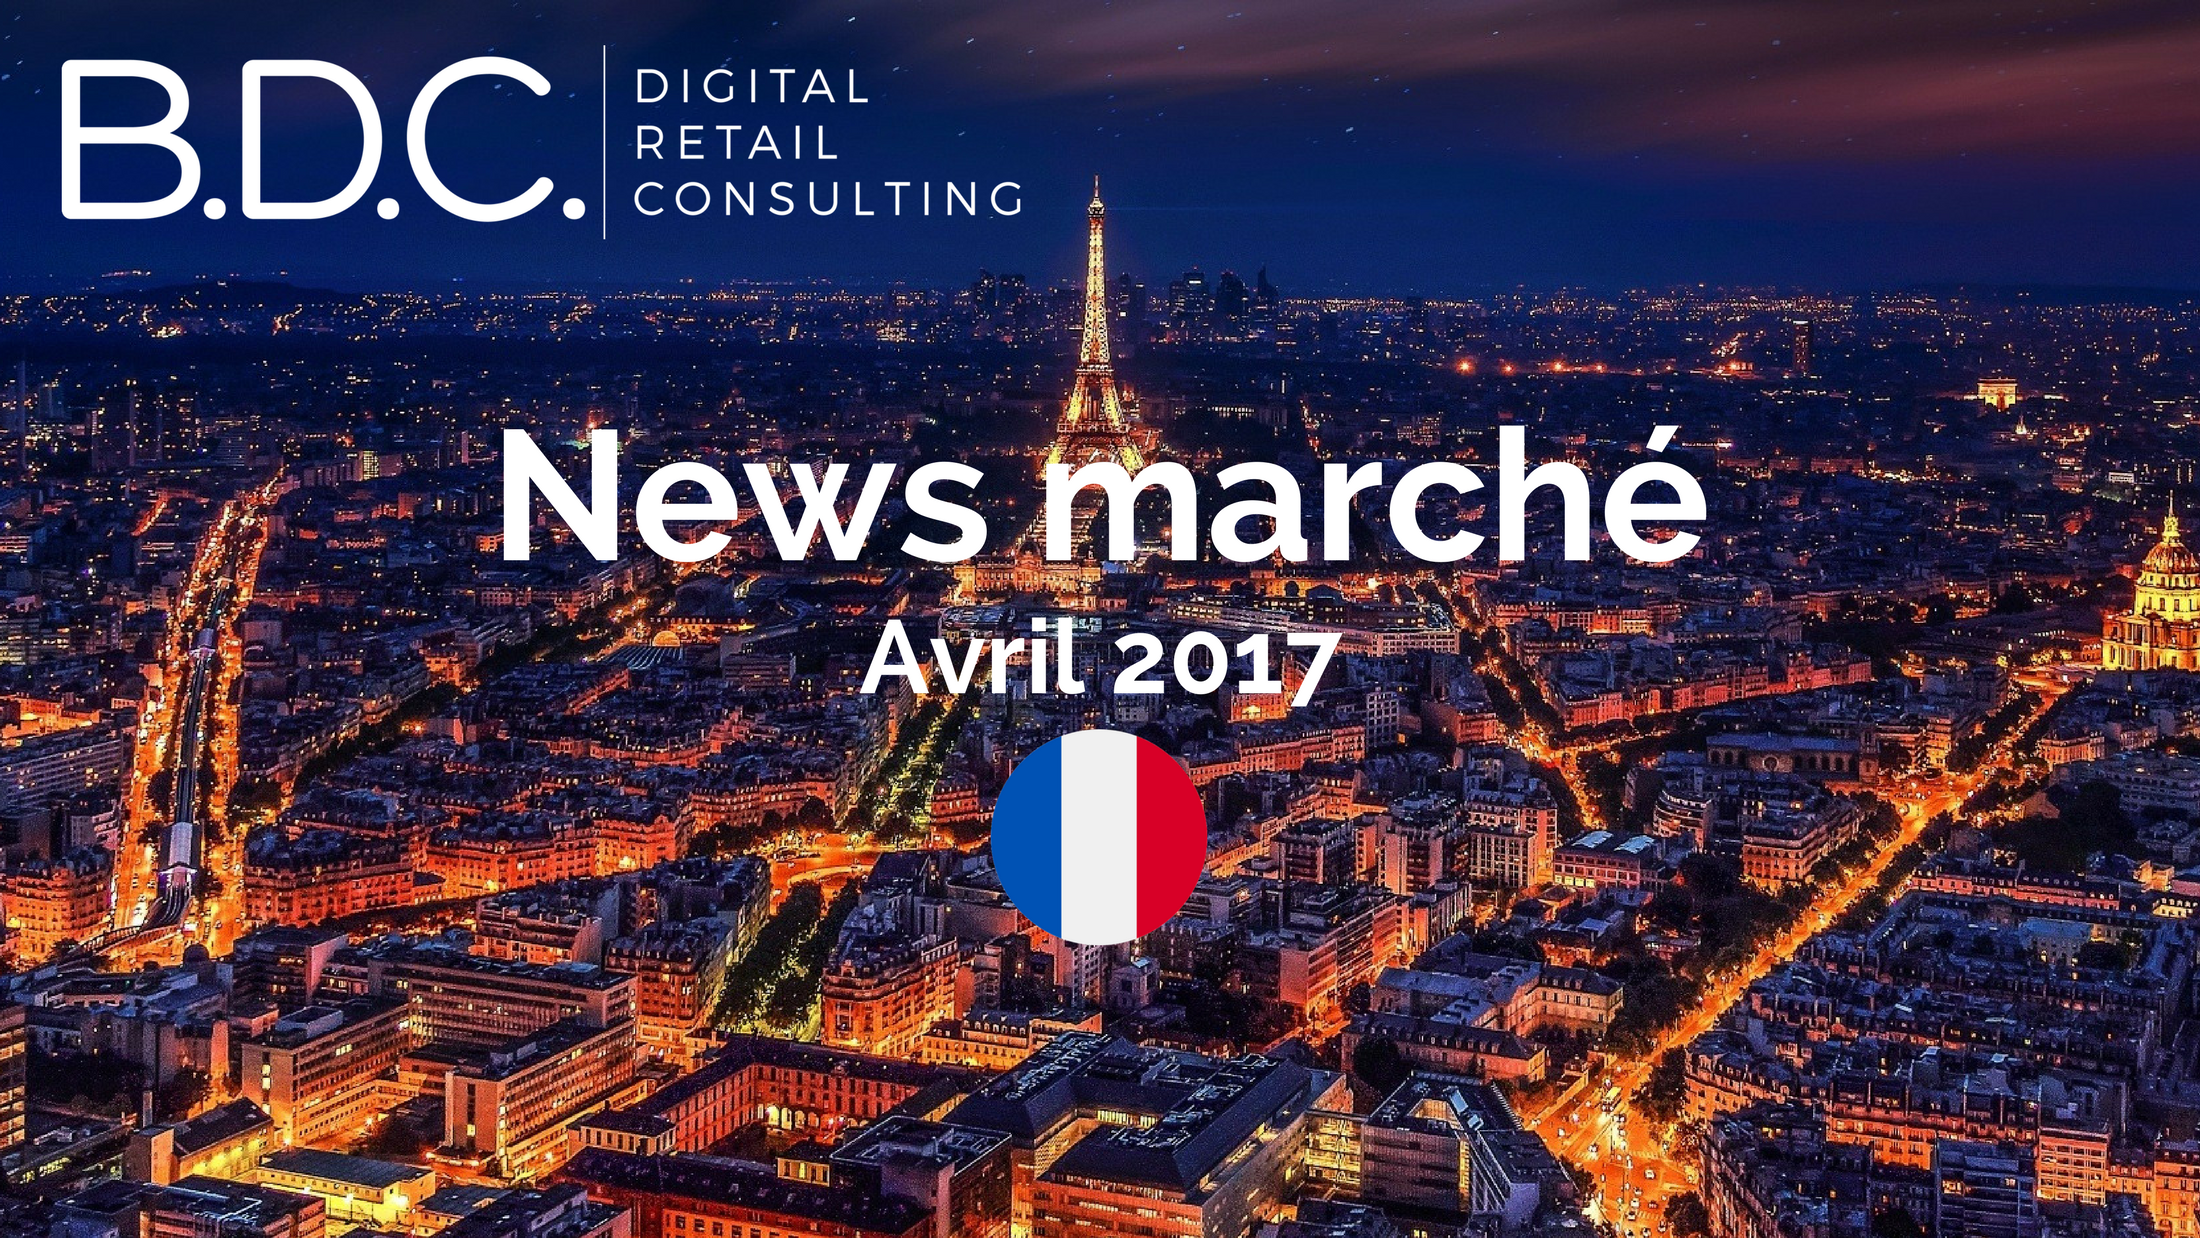 Trends News 5 - News Marché - Avril 2017